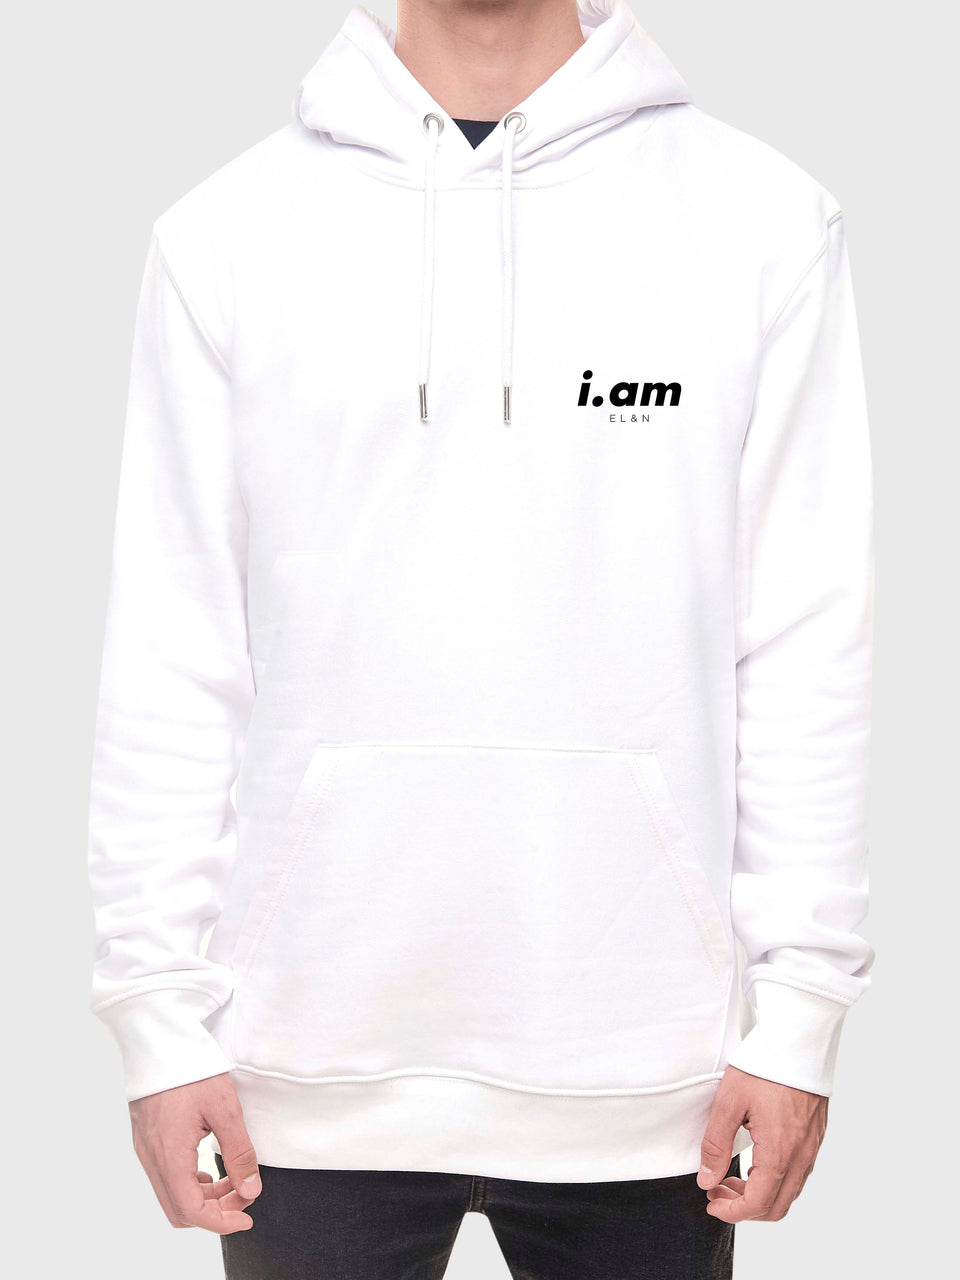 Power - White - Unisex pull over hoodie